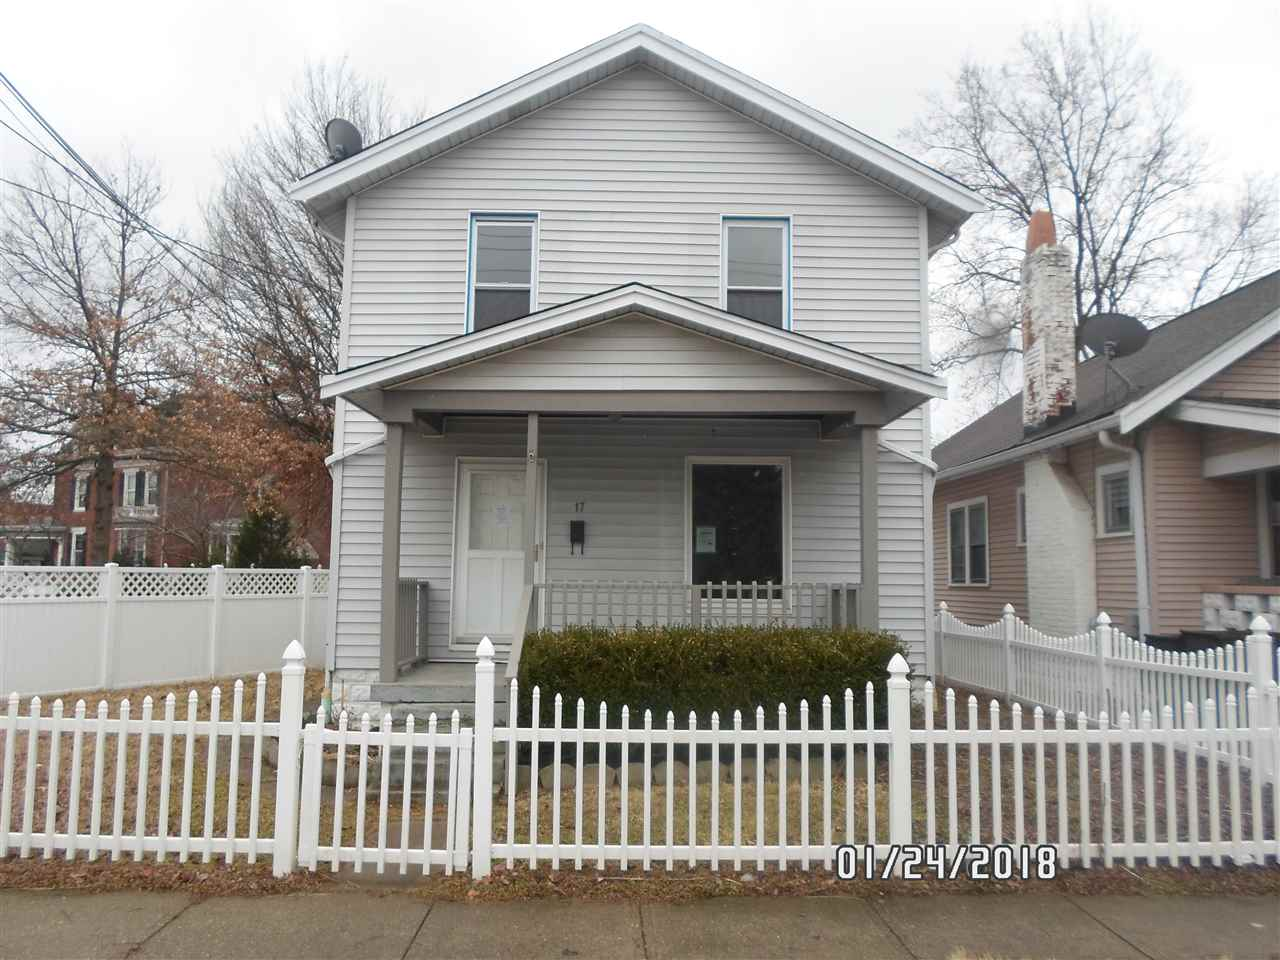 Photo 1 for 17 W 36th St Latonia, KY 41015